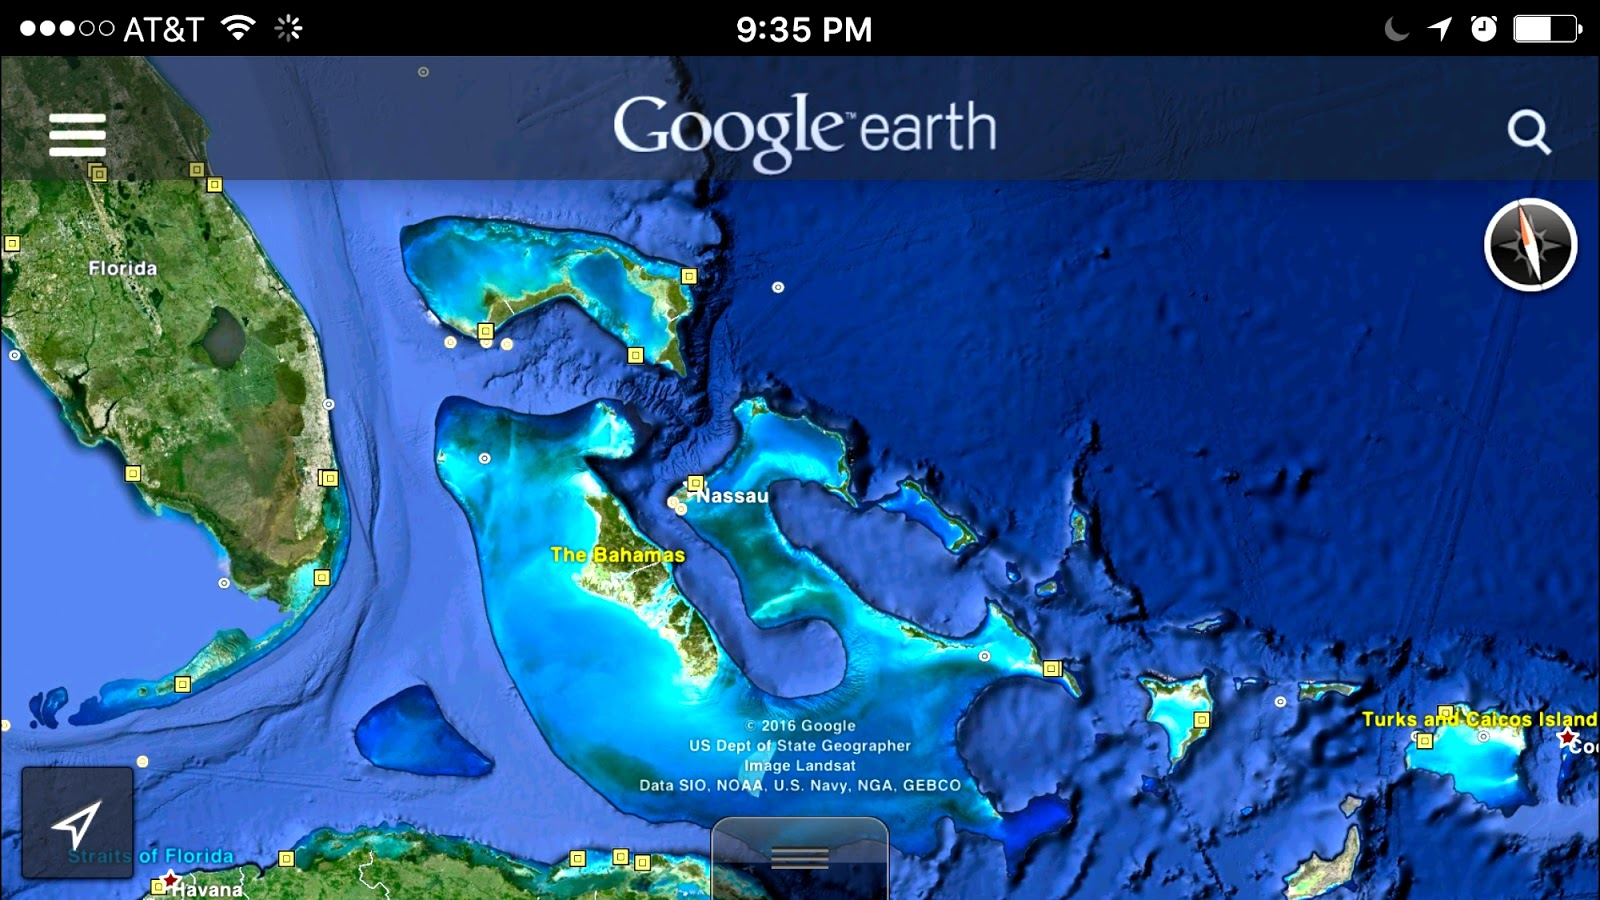 with water below planning to cross the gulf stream